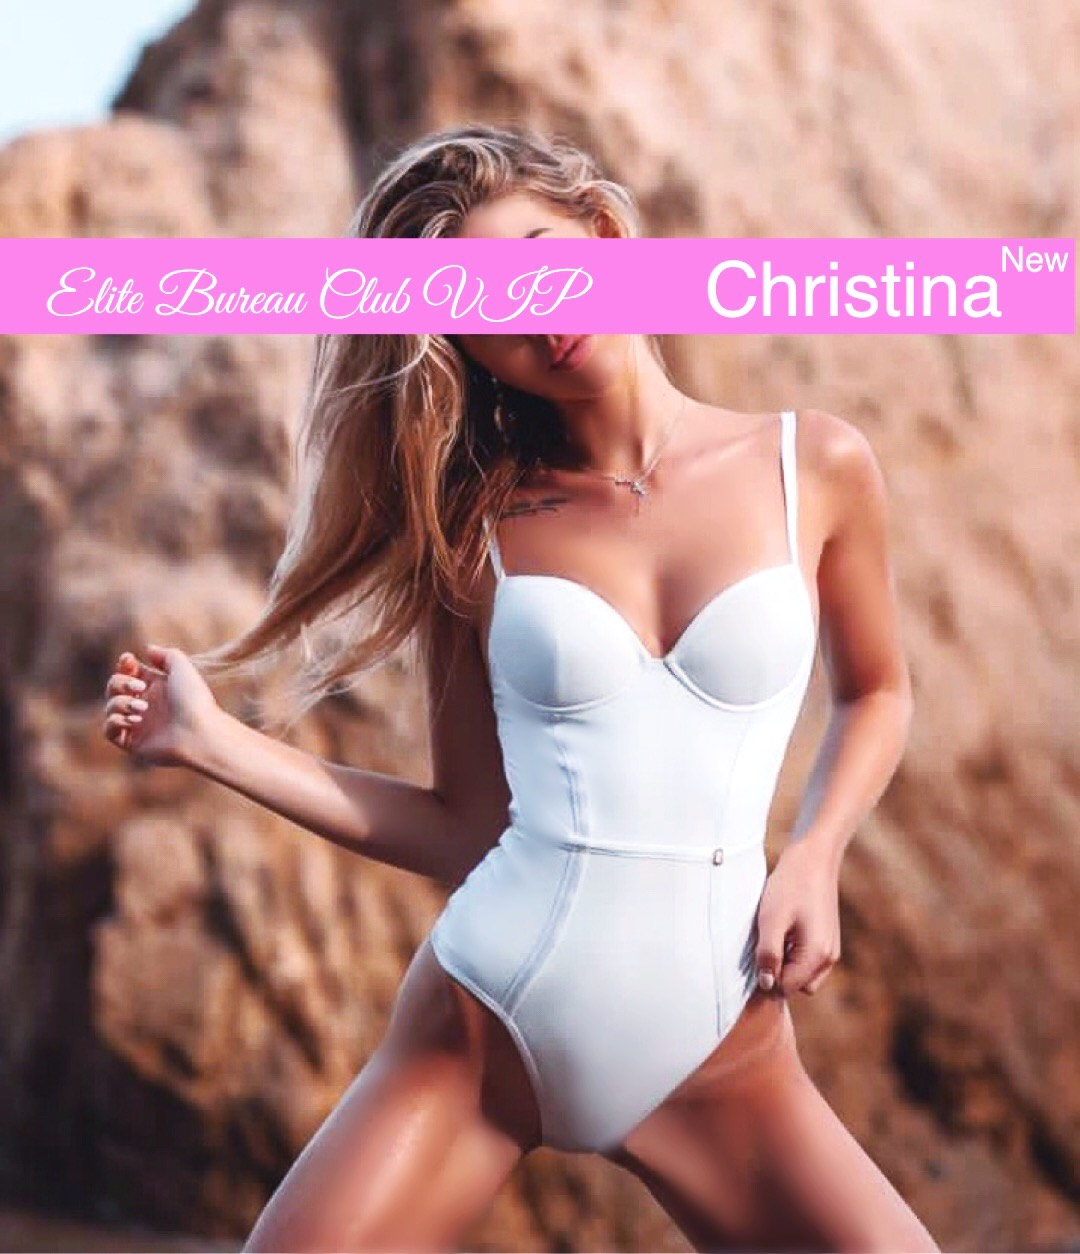 New Celebrity Super Model Christina